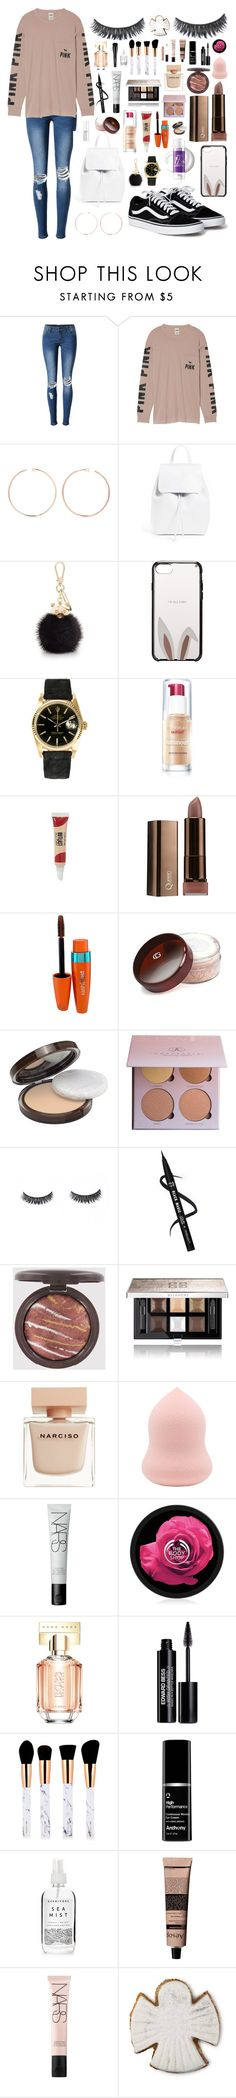 """""""Untitled #62"""" by sarahdoyle448 ❤ liked on Polyvore featuring WithChic, Victoria's Secret, Anita Ko, Mansur Gavriel, Furla, Kate Spade, Rolex, COVERGIRL, Givenchy and Narciso Rodriguez"""